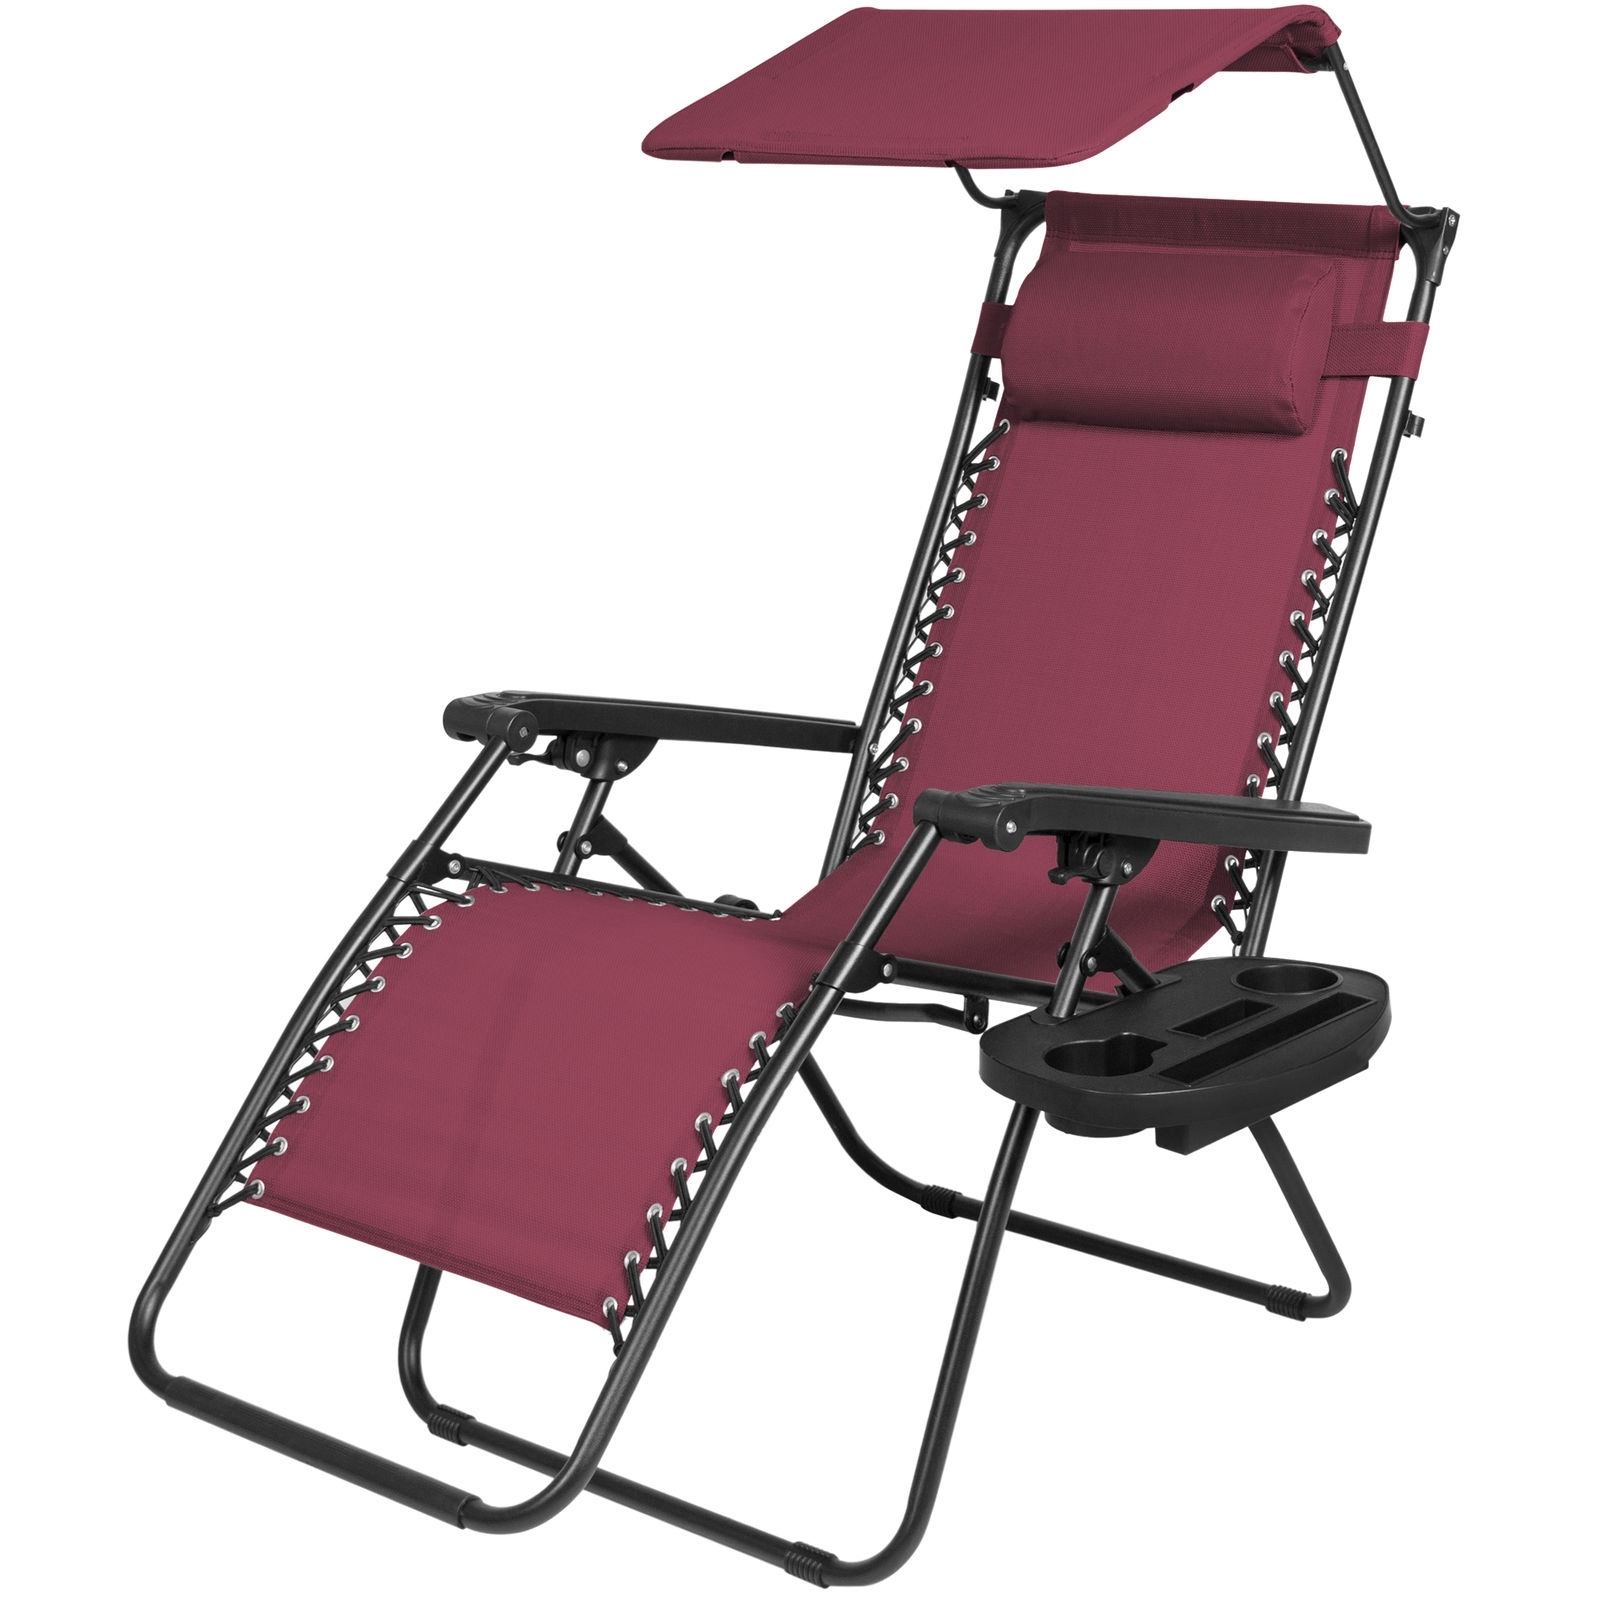 Zero Gravity Chaise Lounge Chairs In Recent Zero Gravity Lounge Chairs With Canopy • Lounge Chairs Ideas (View 11 of 15)